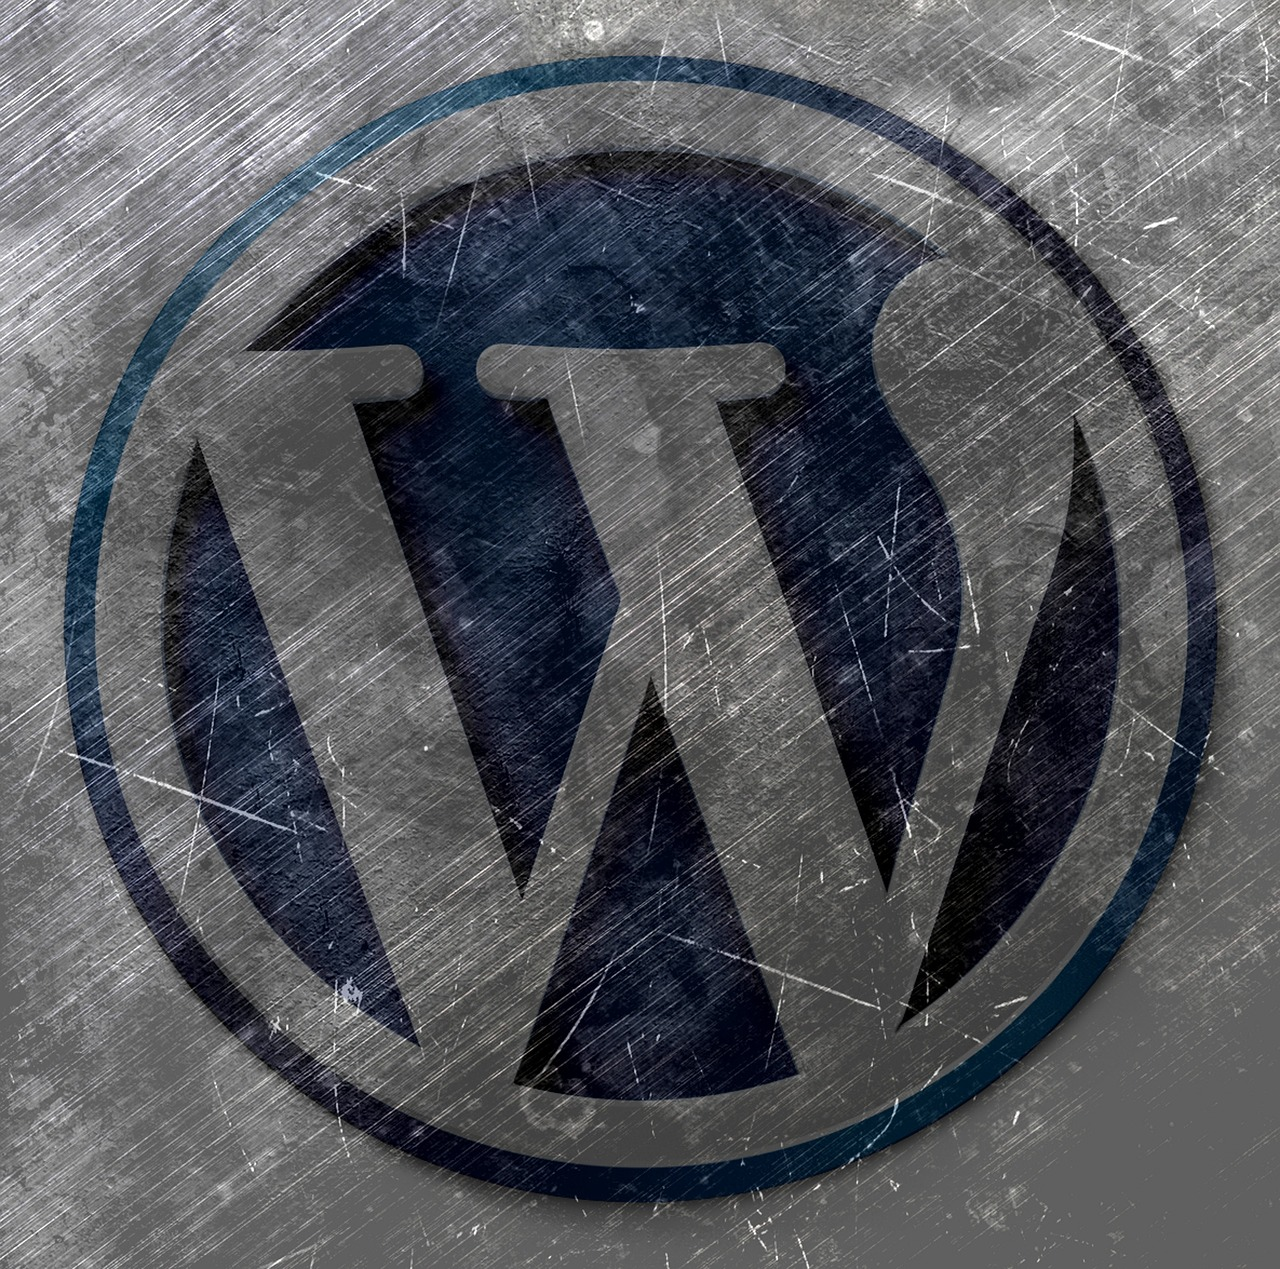 wordpress yos-blo